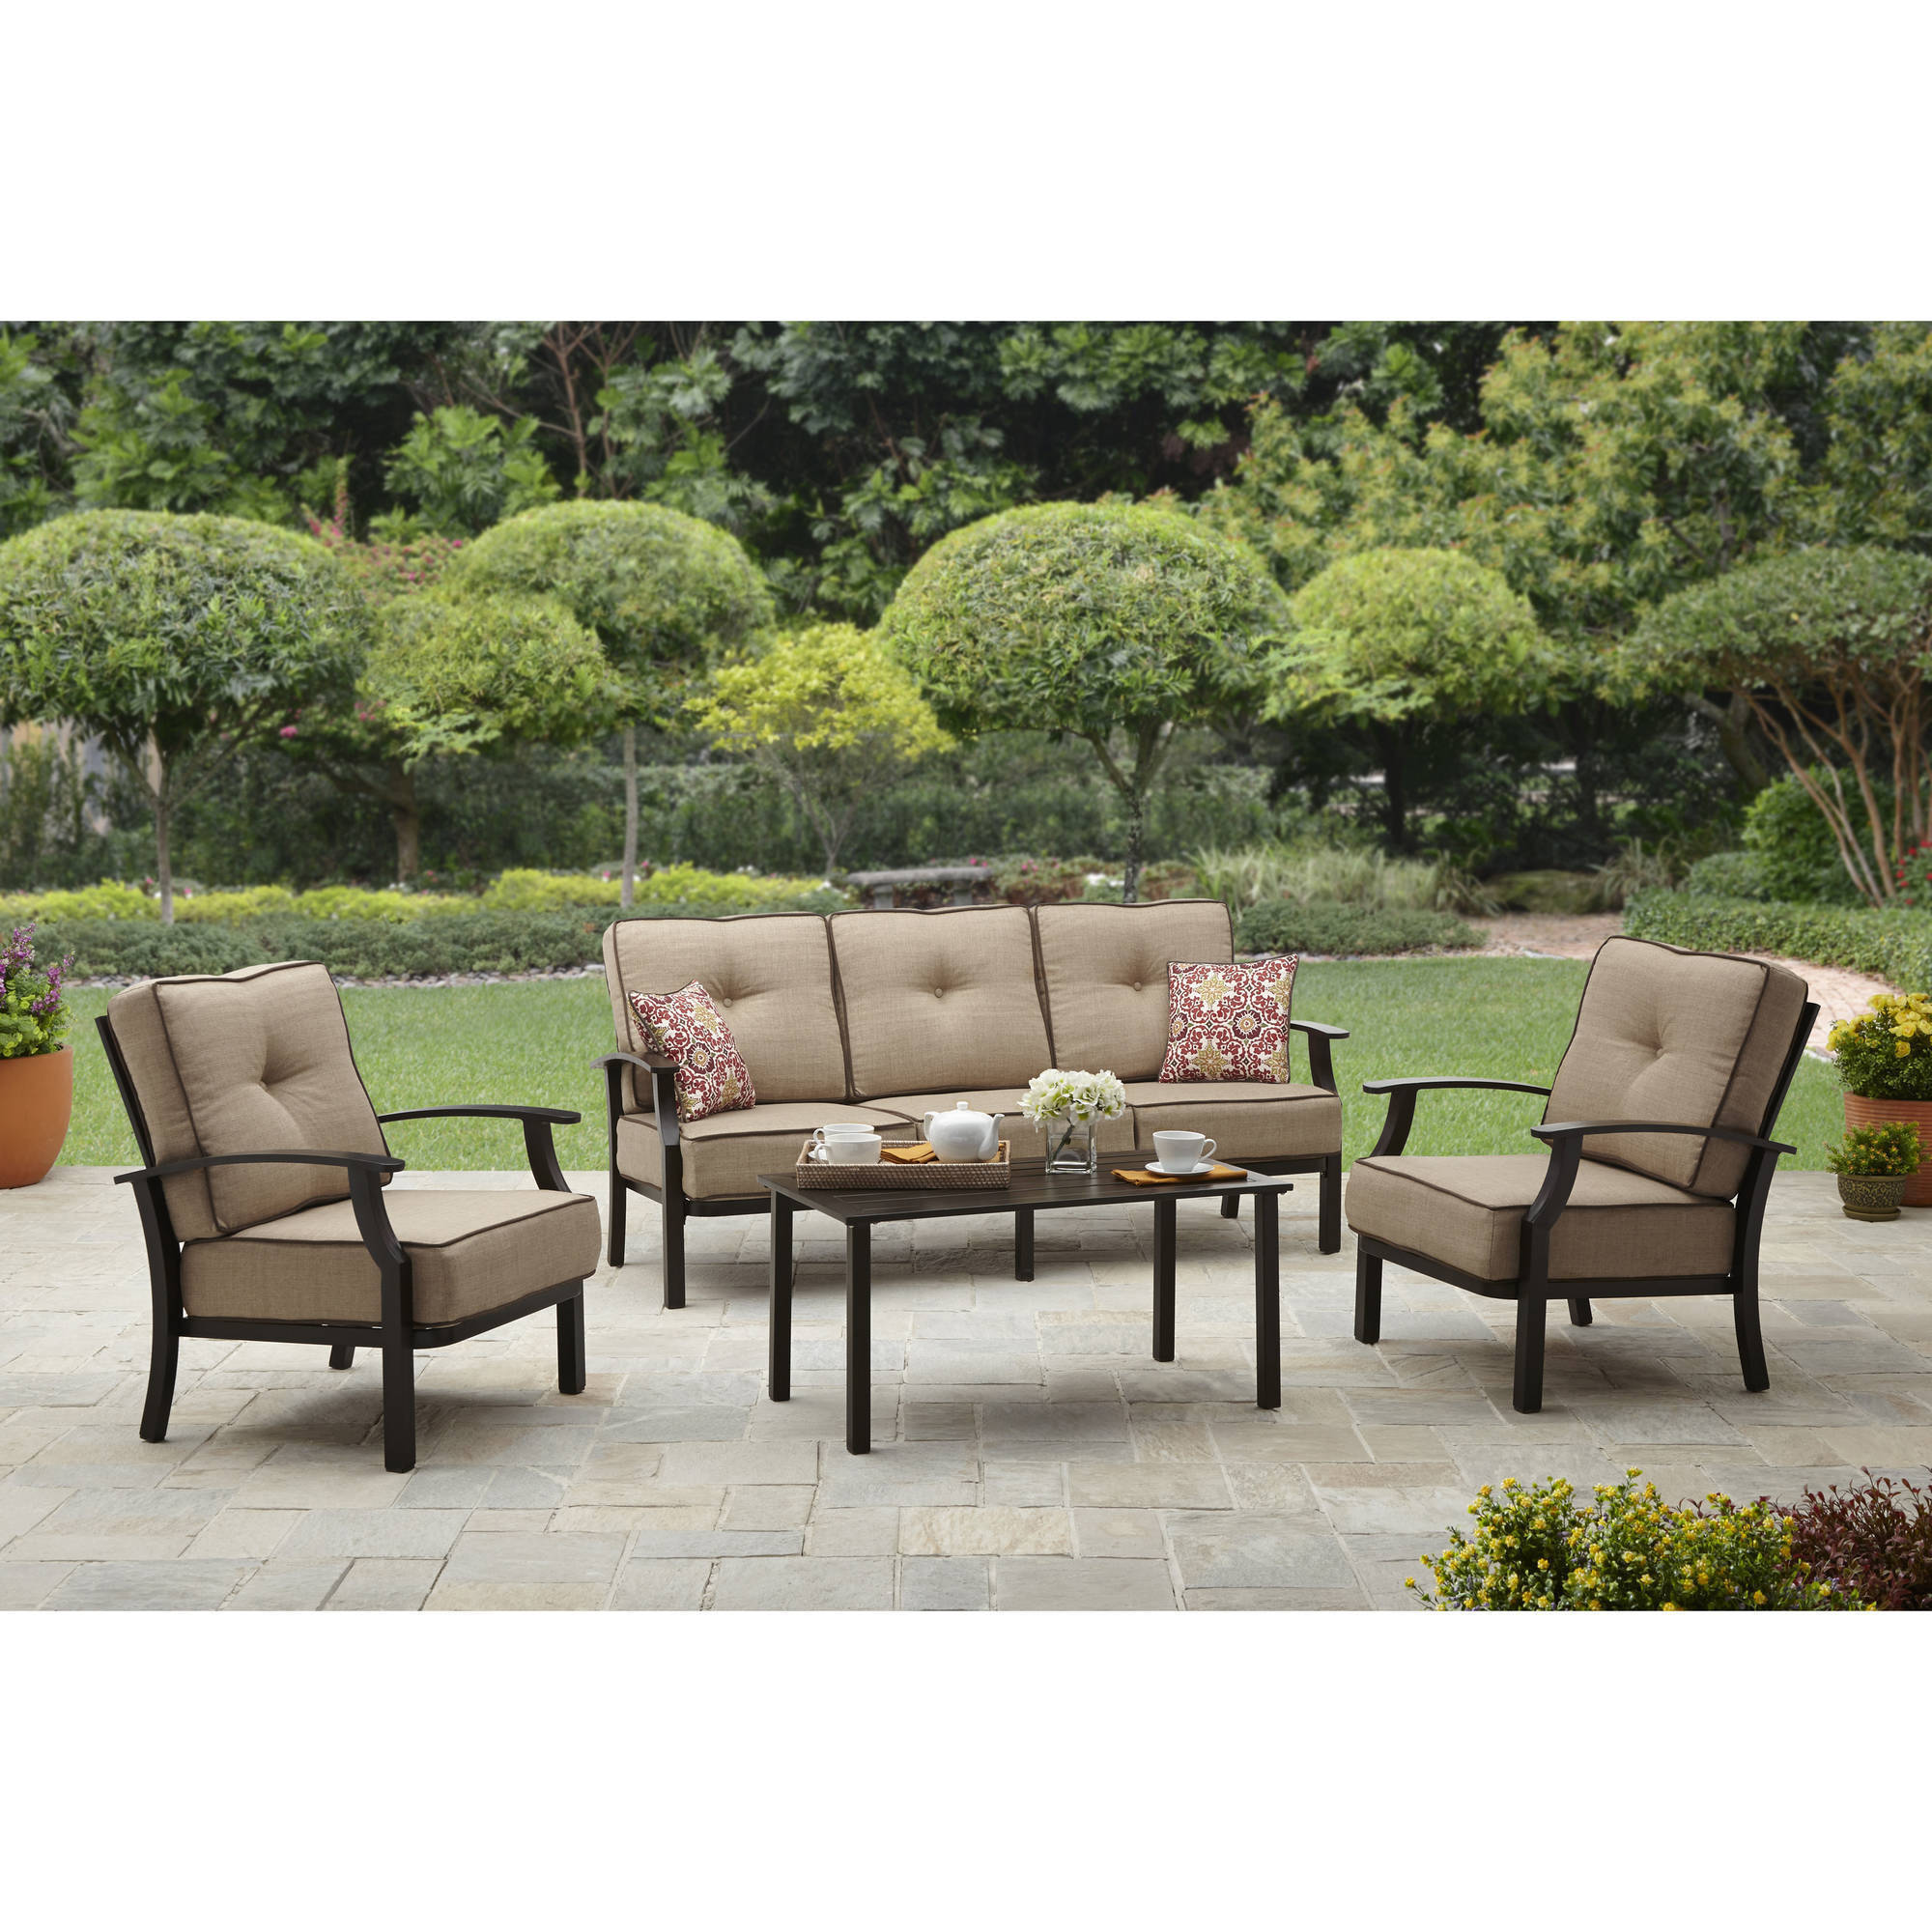 Better Homes And Gardens Carter Hills Outdoor Conversation Set